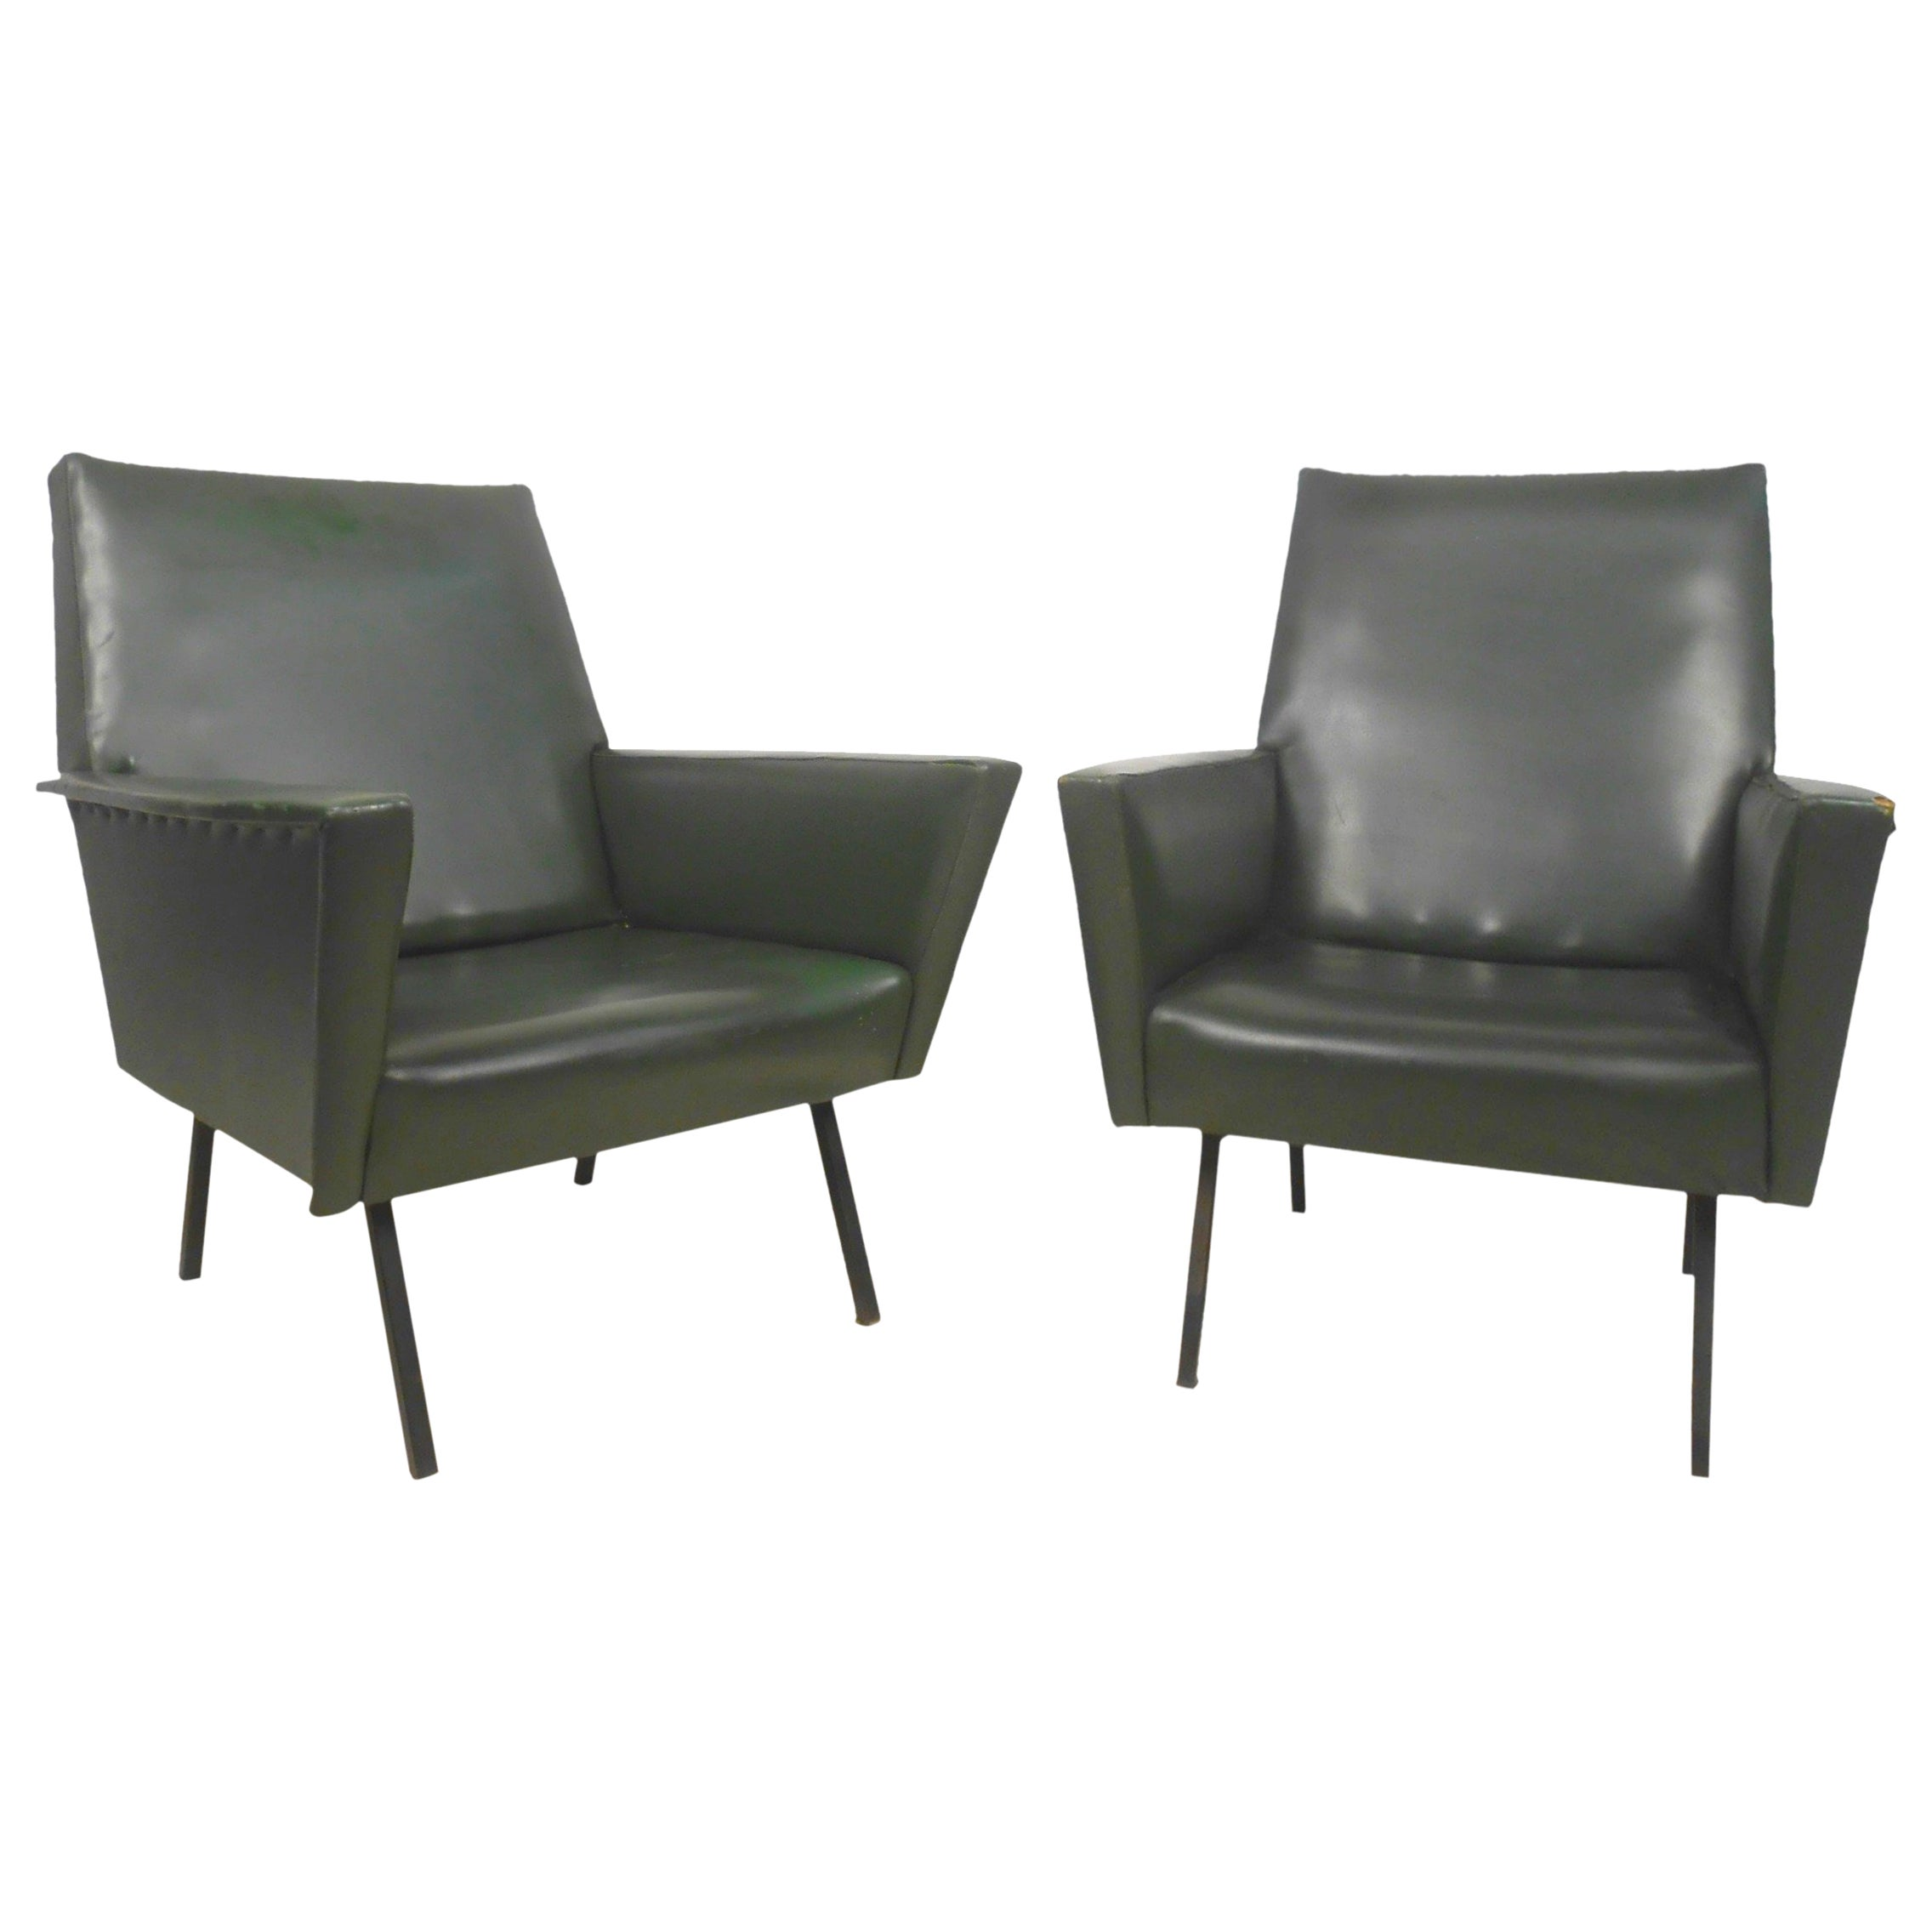 Pair of Vintage Modern Winged Arm Lounge Chairs